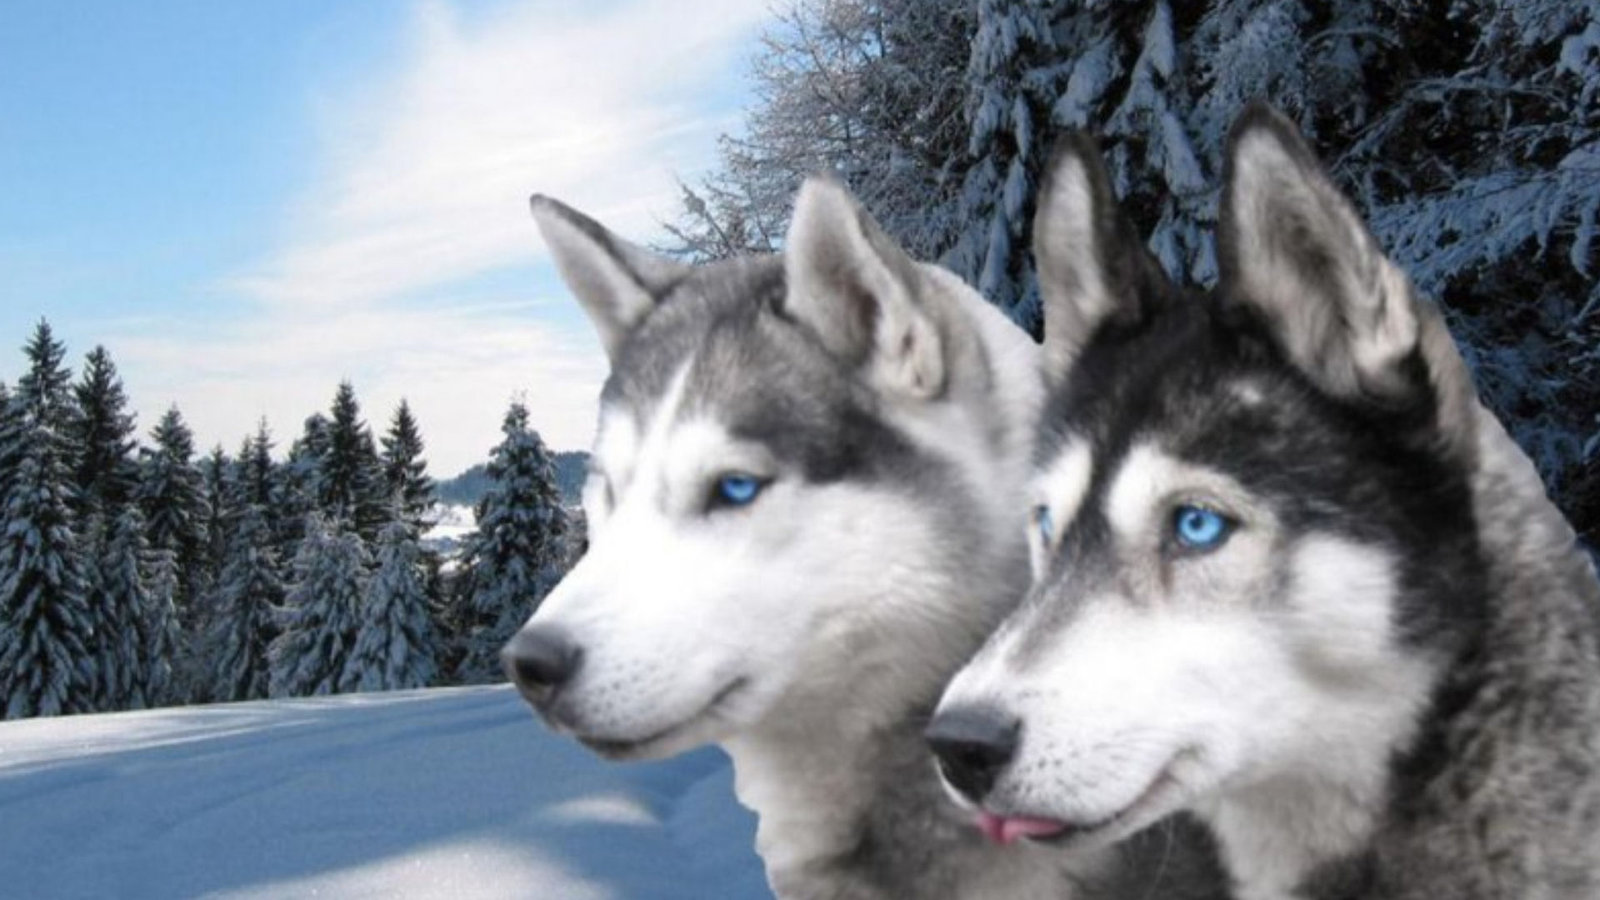 Best Siberian Husky wallpaper ID:155229 for High Resolution hd 1600x900 computer